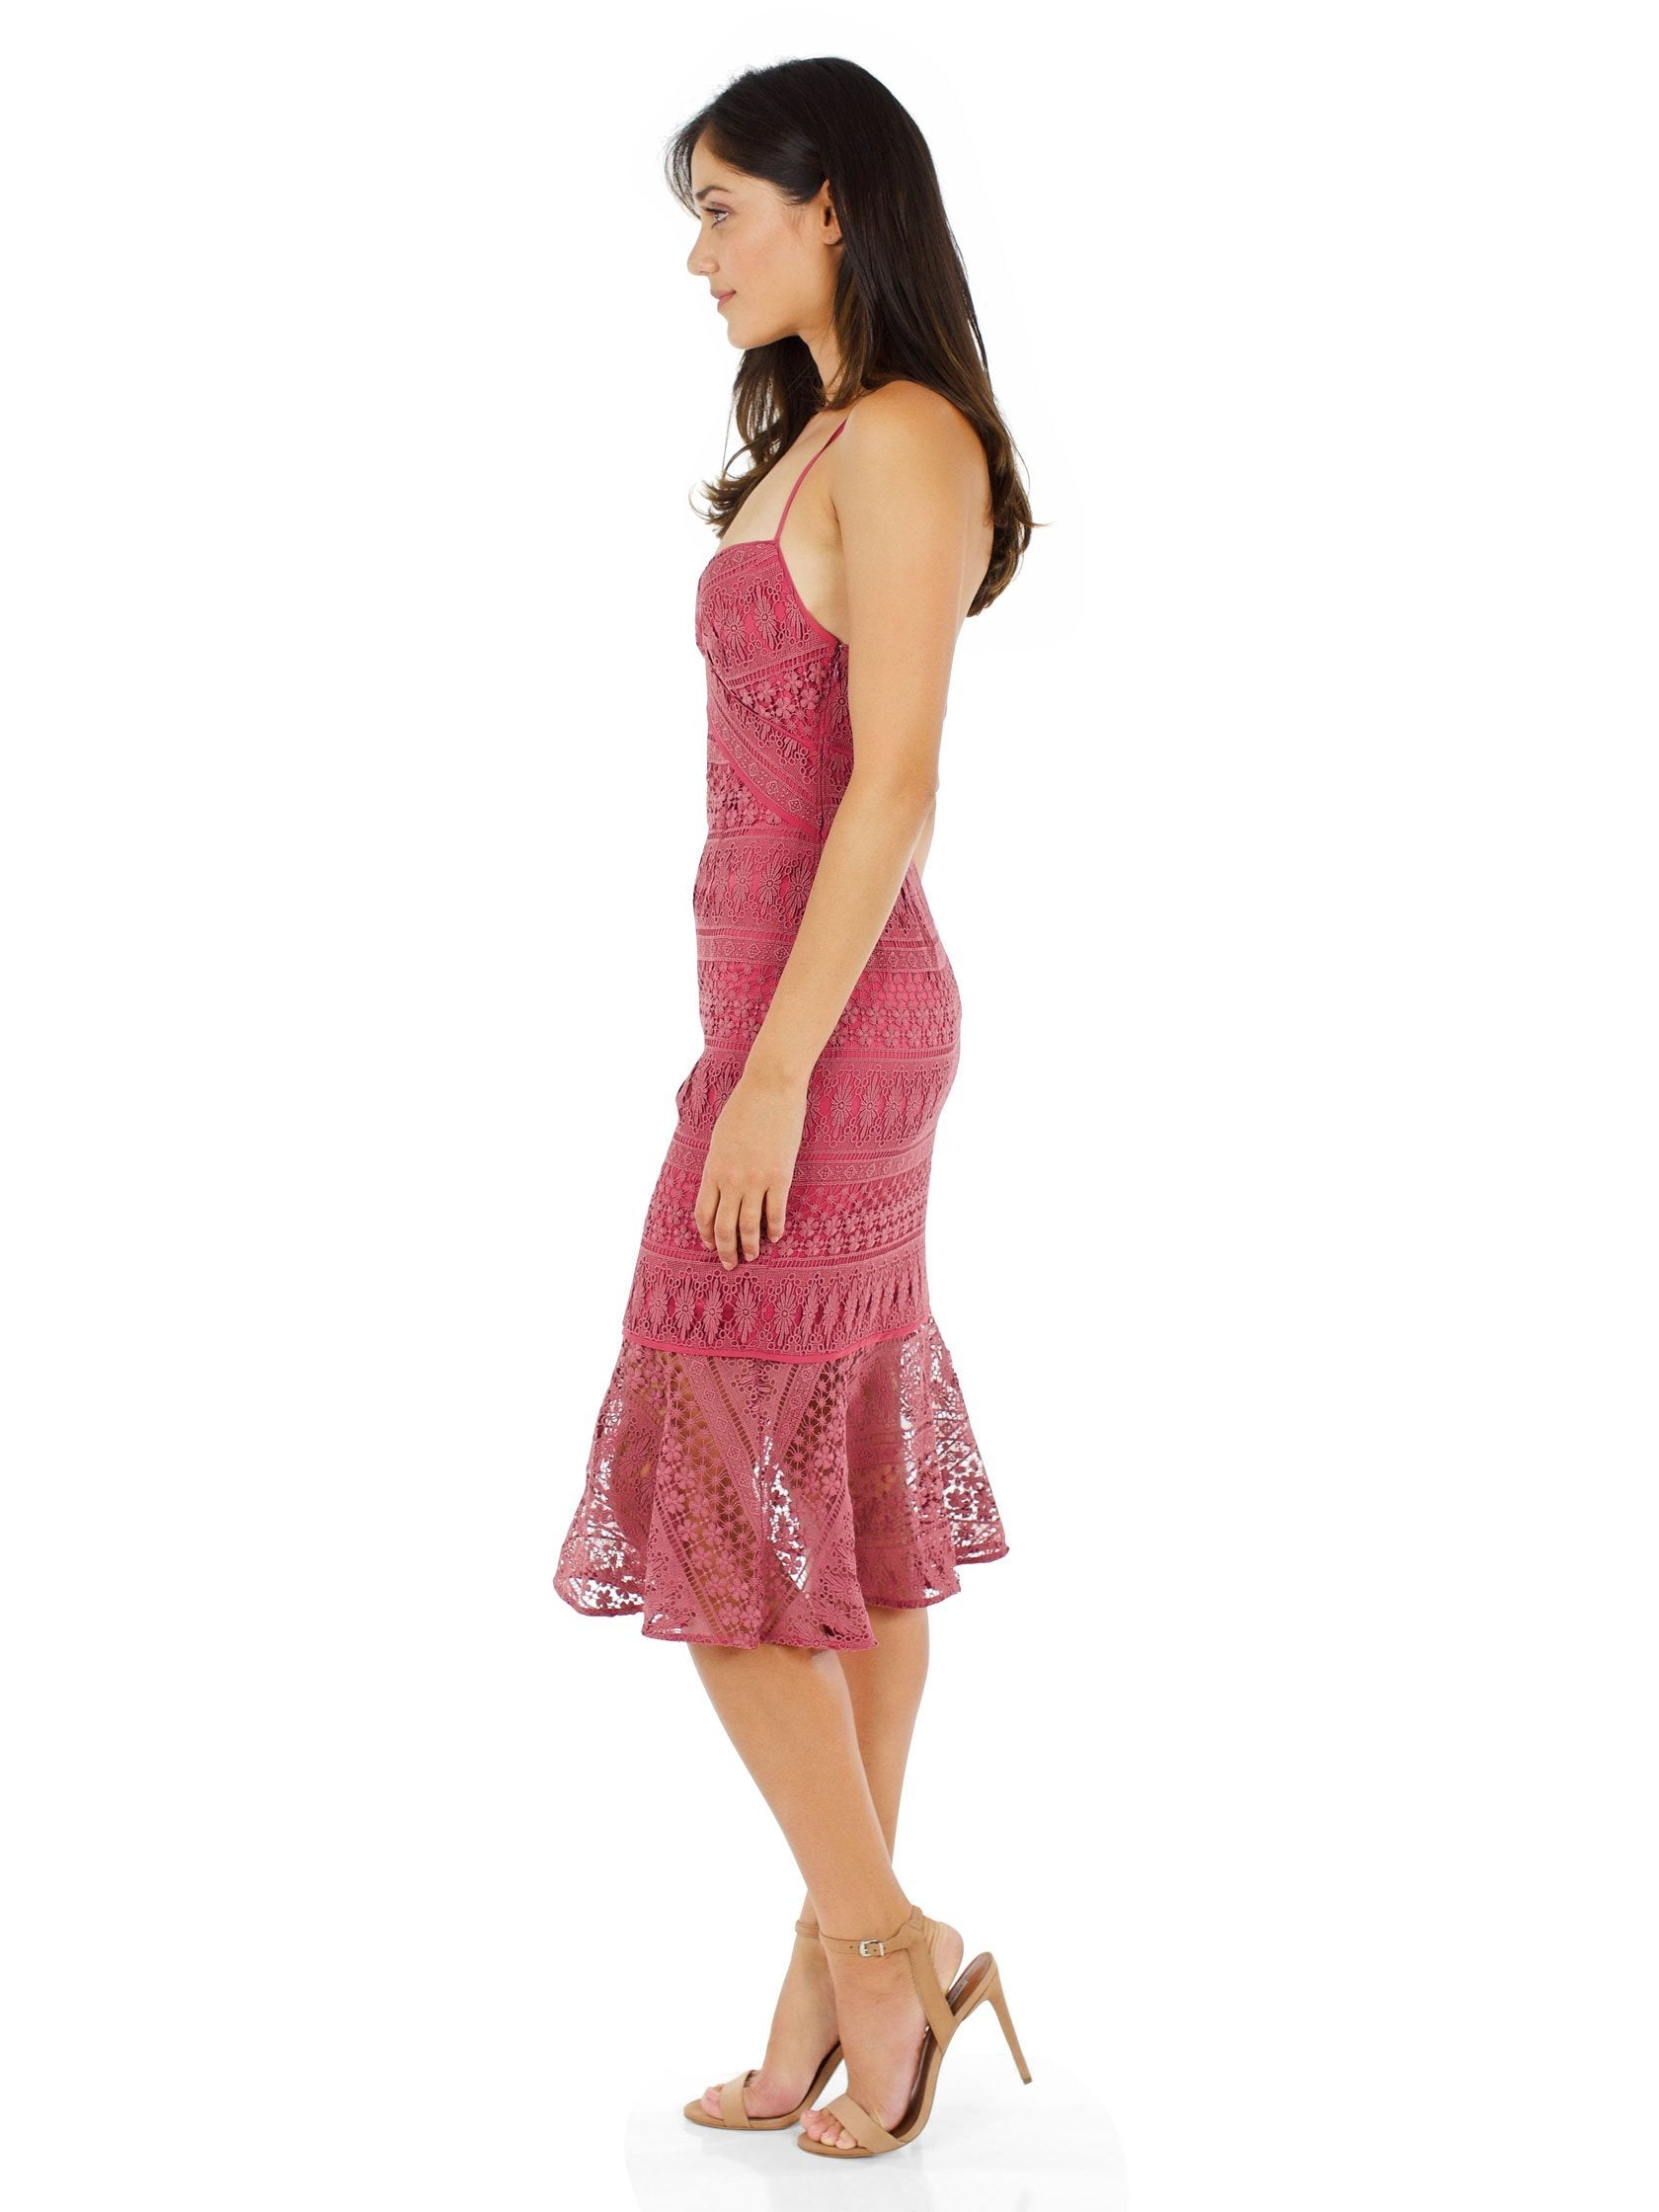 Woman wearing a dress rental from LIKELY called Darby Dress